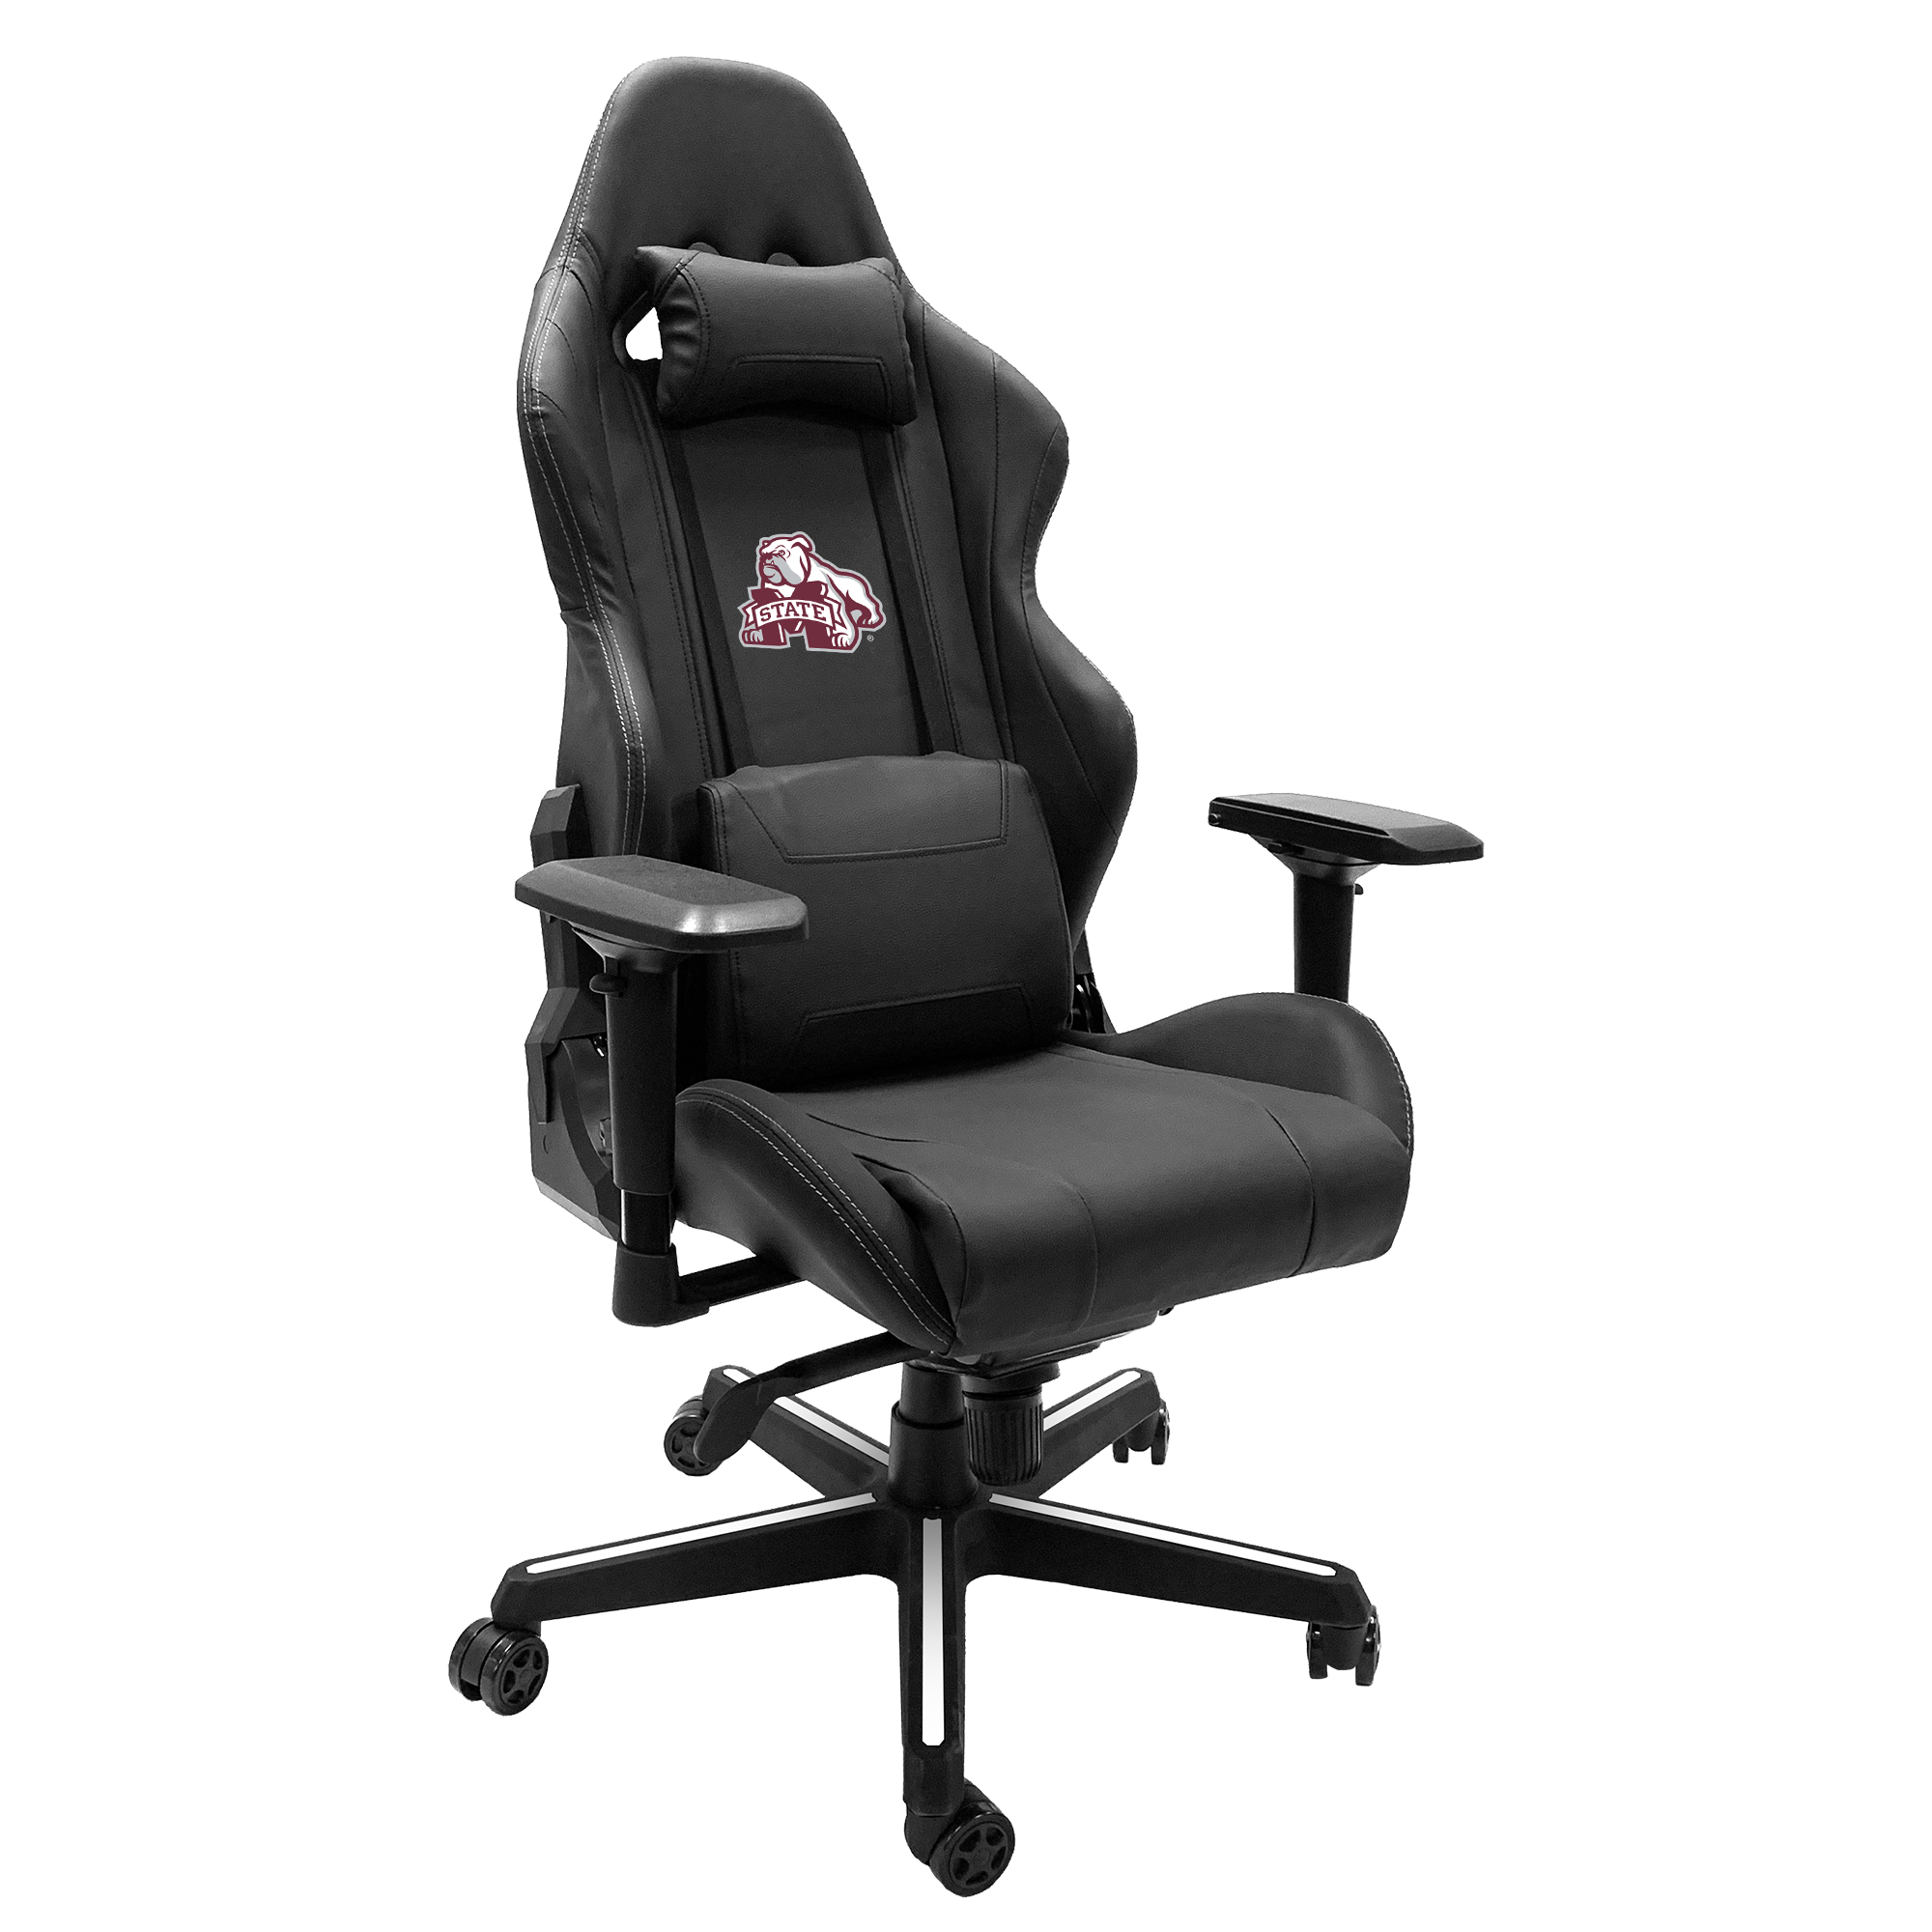 Xpression Gaming Chair with Mississippi State Secondary